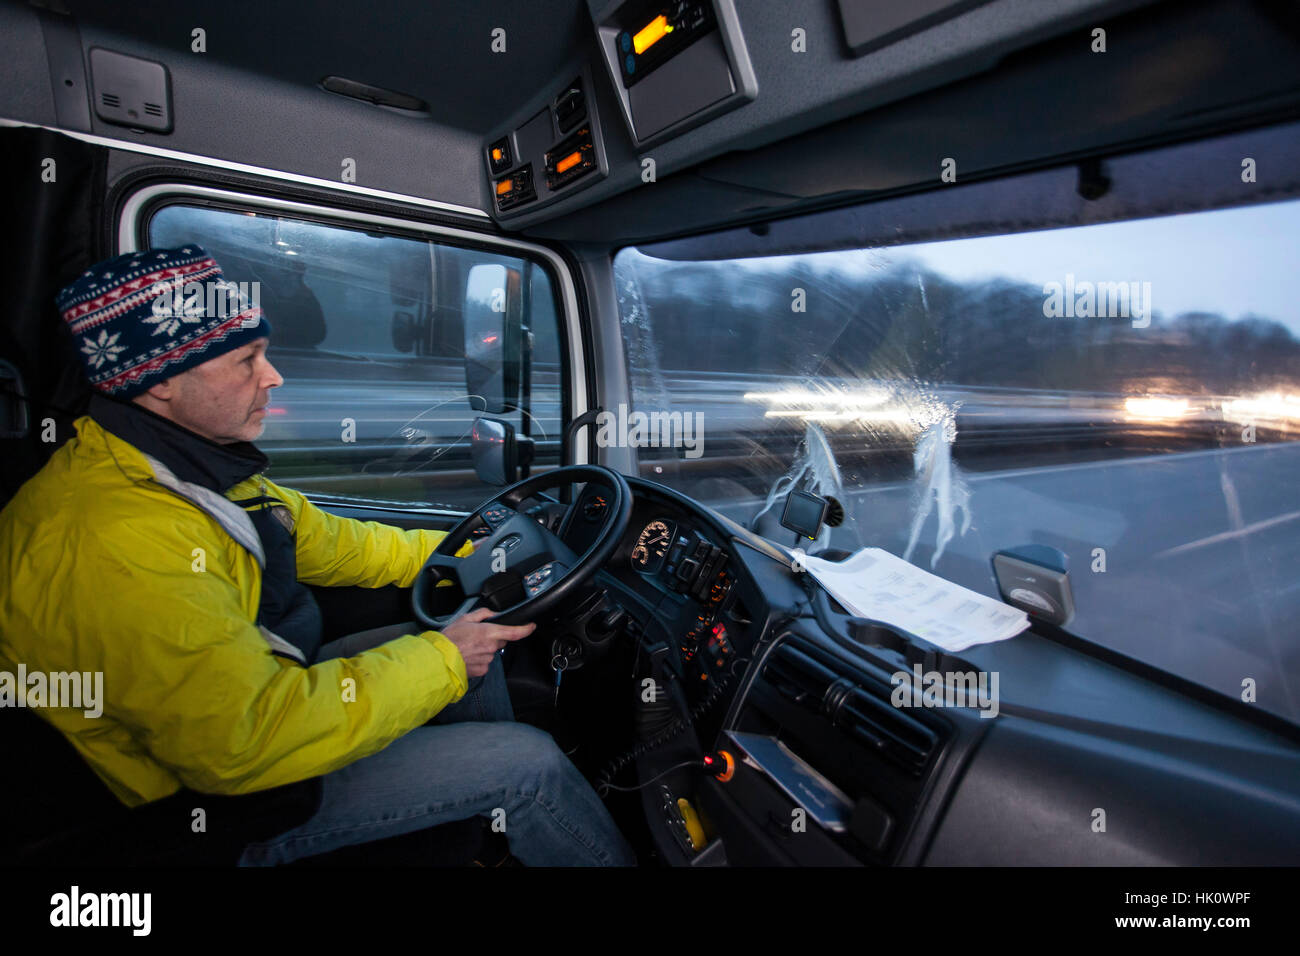 Professional driver on tour - Stock Image